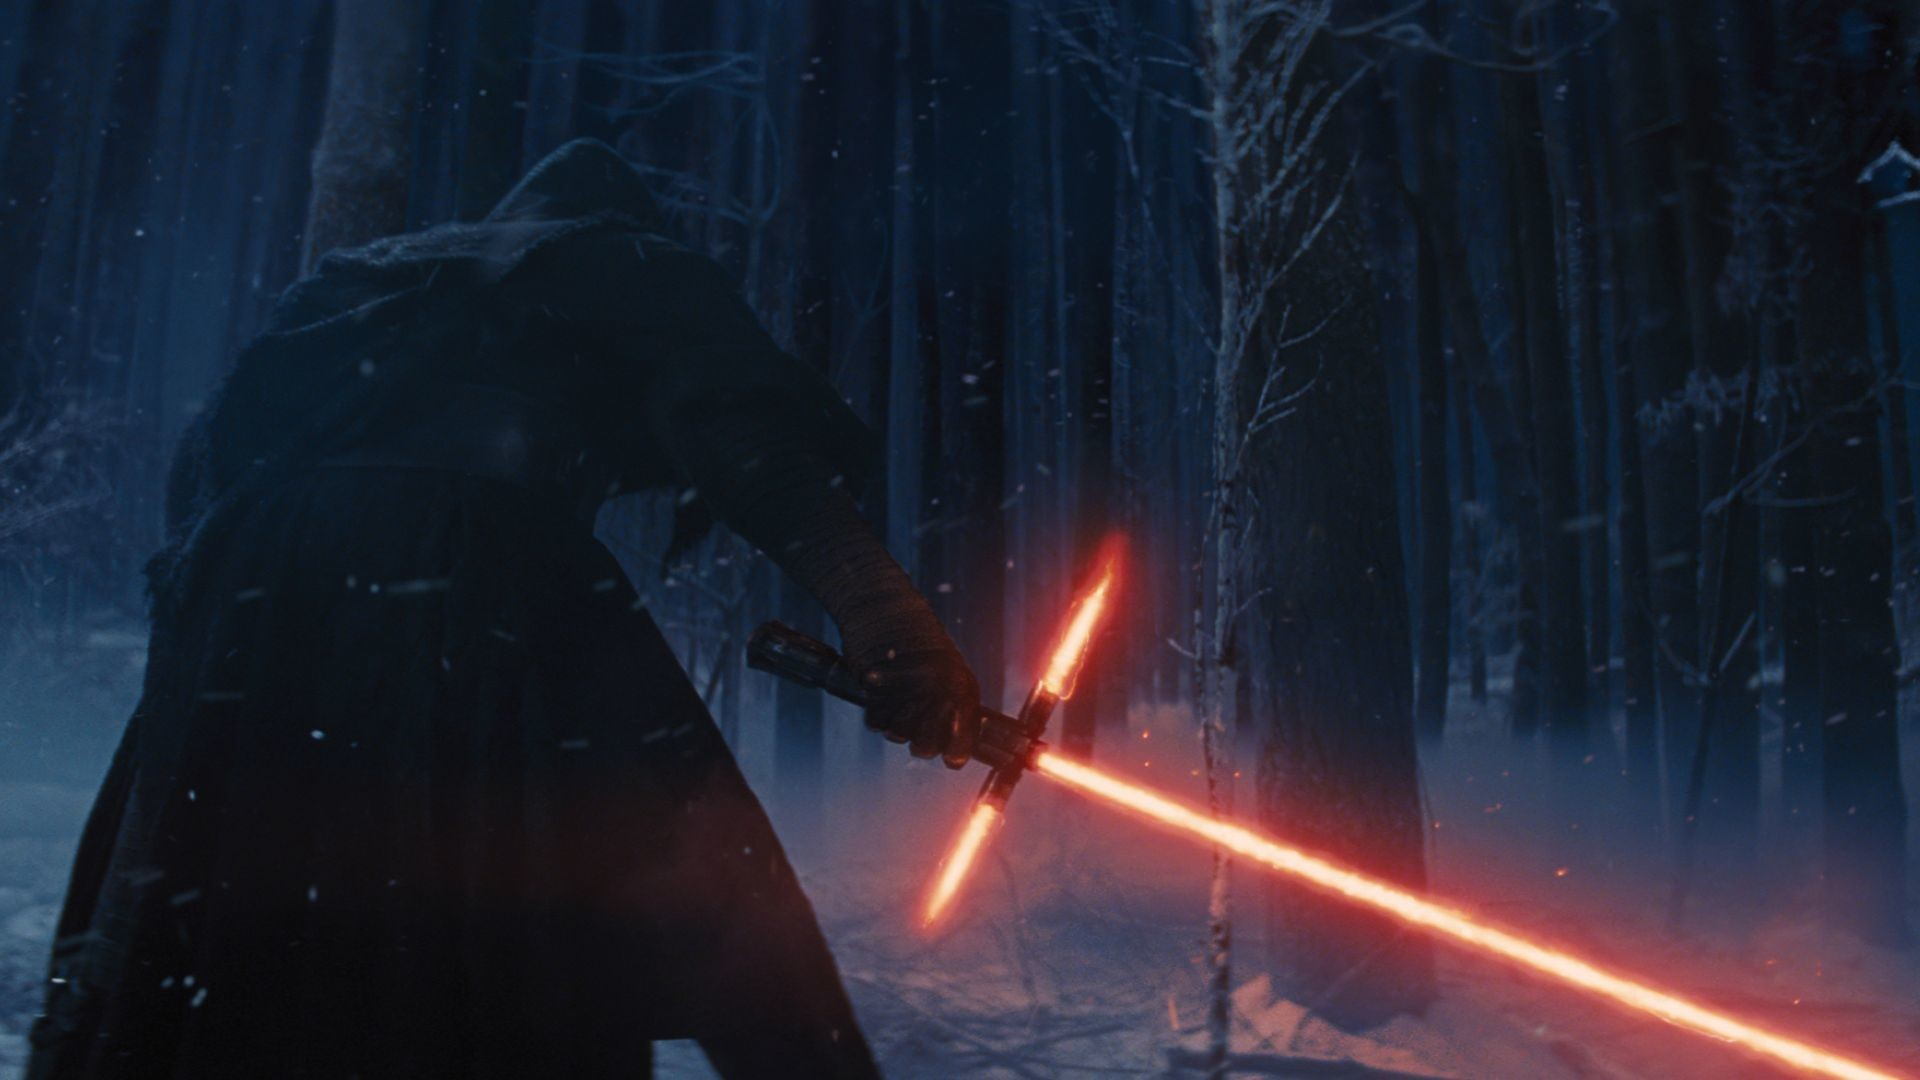 Res: 1920x1080, Side of the Force The Force Awakens Sith 1080x1920 HD Wallpaper